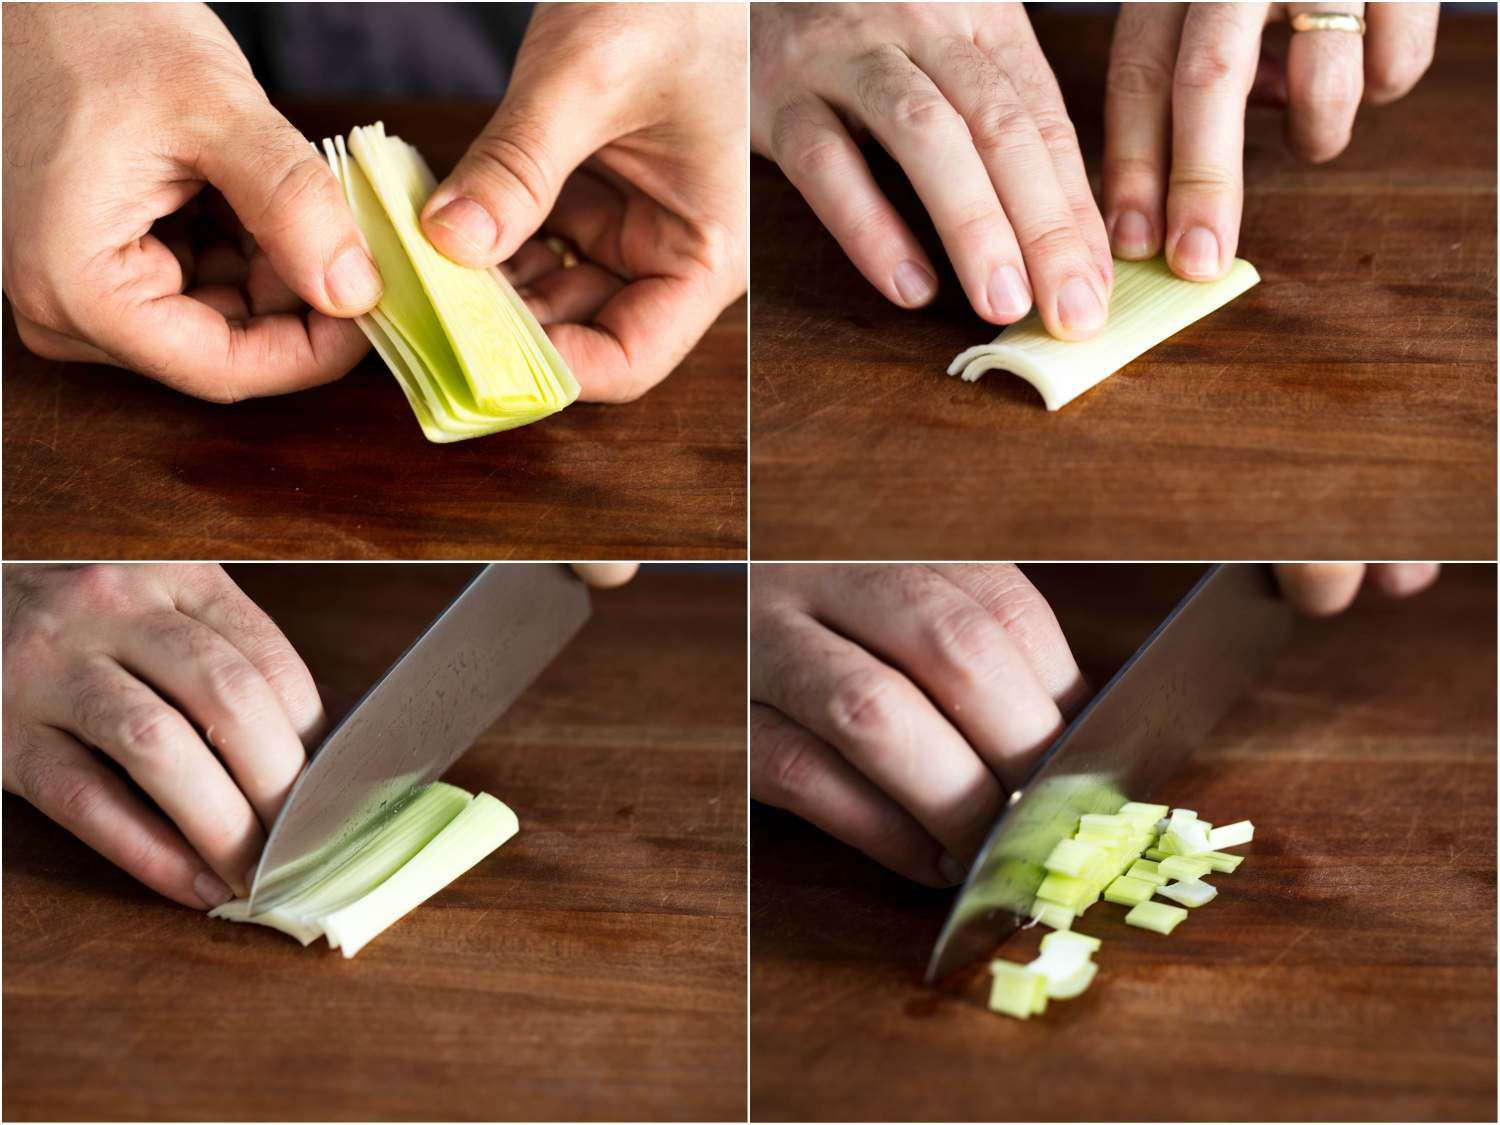 Collage of four photos of leeks being sliced and diced: separating leek layers, stacking them on top of each other, slicing into strips, then cross-cutting into dice